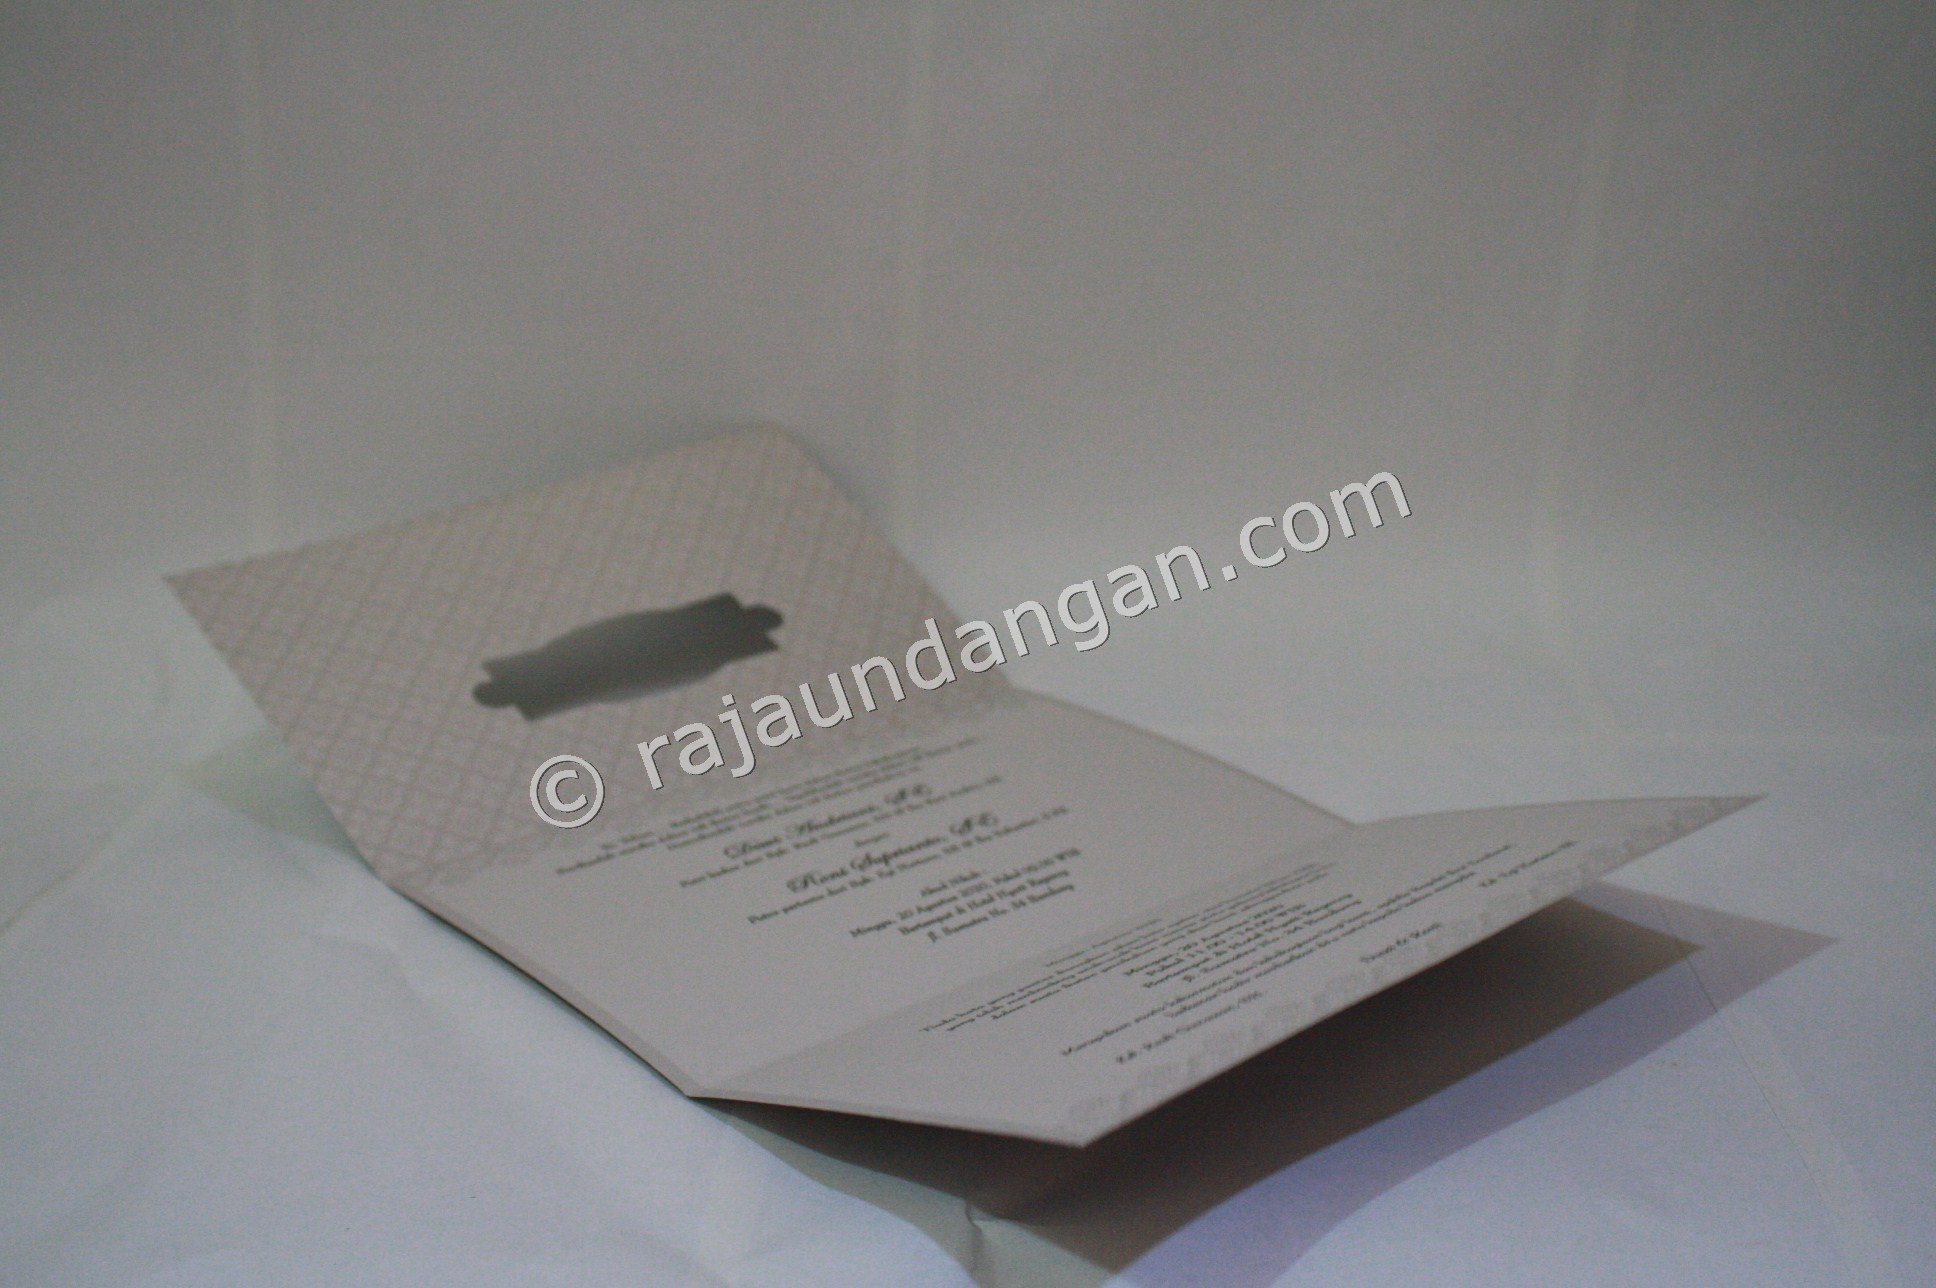 Undangan Pernikahan Softcover Lia dan Doni 3 - Tutorial Mengerjakan Wedding Invitations Simple dan Elegan